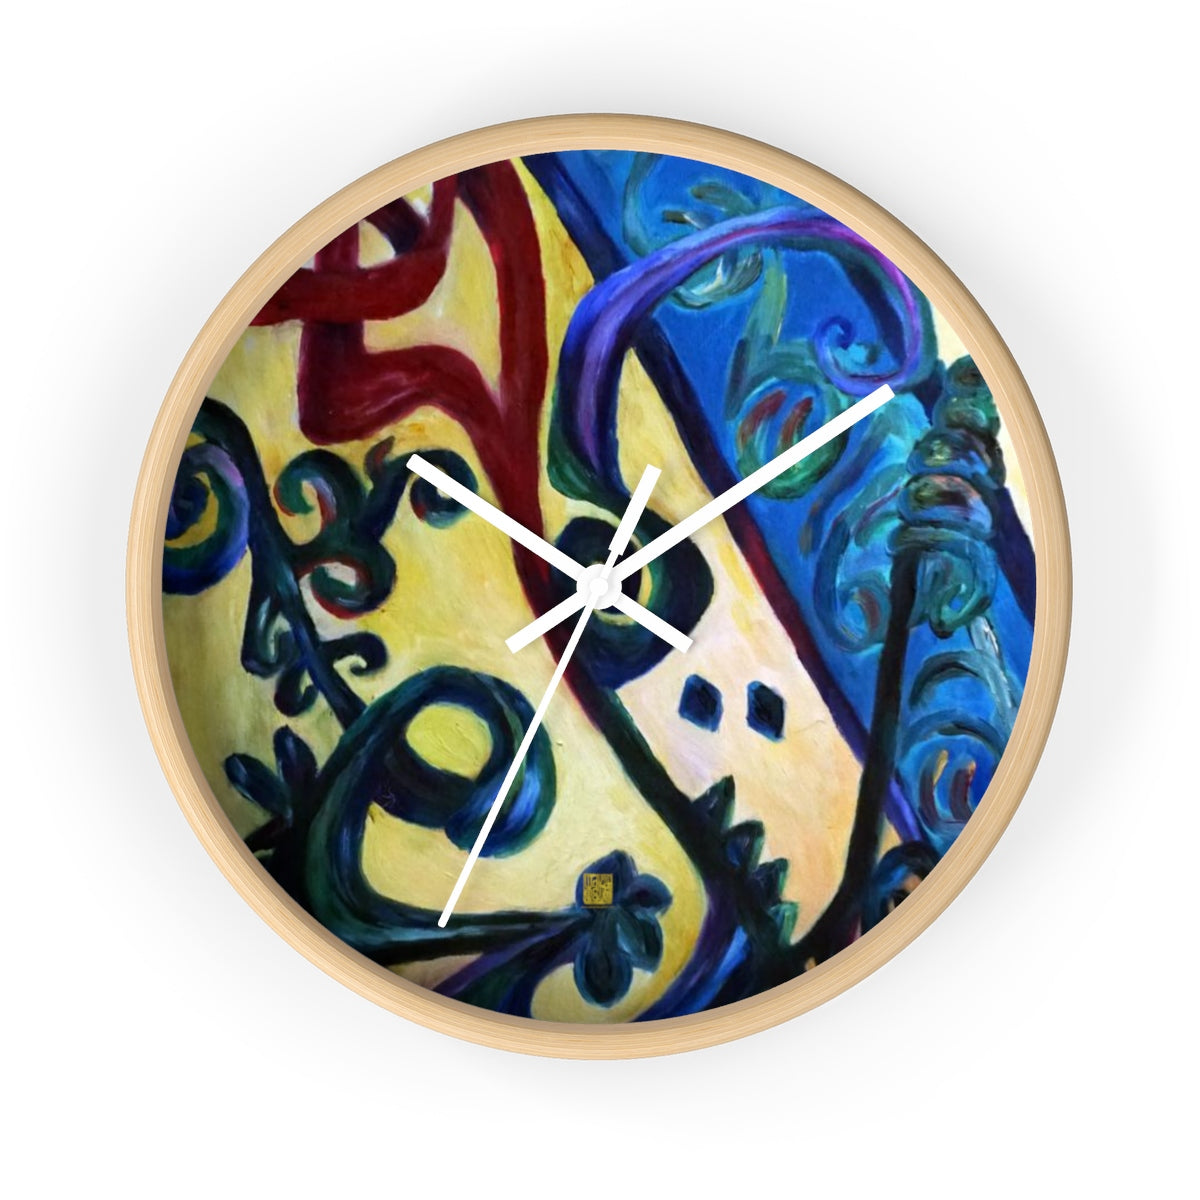 Red Rose Strength Abstract Arabic Word 10 inch Wall Clock - Made in USA - alicechanart